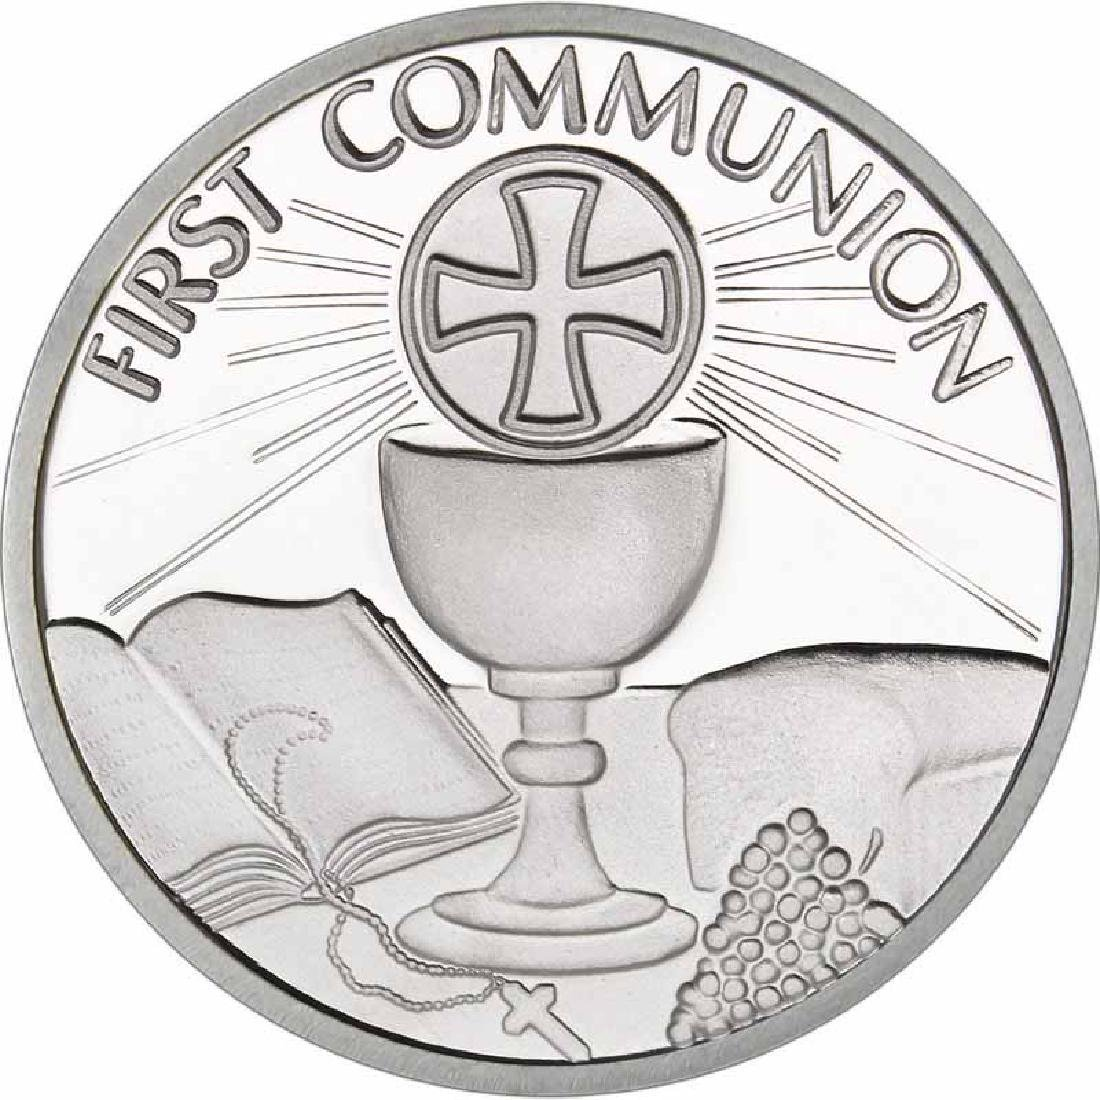 First Communion .999 Silver 1 oz Round